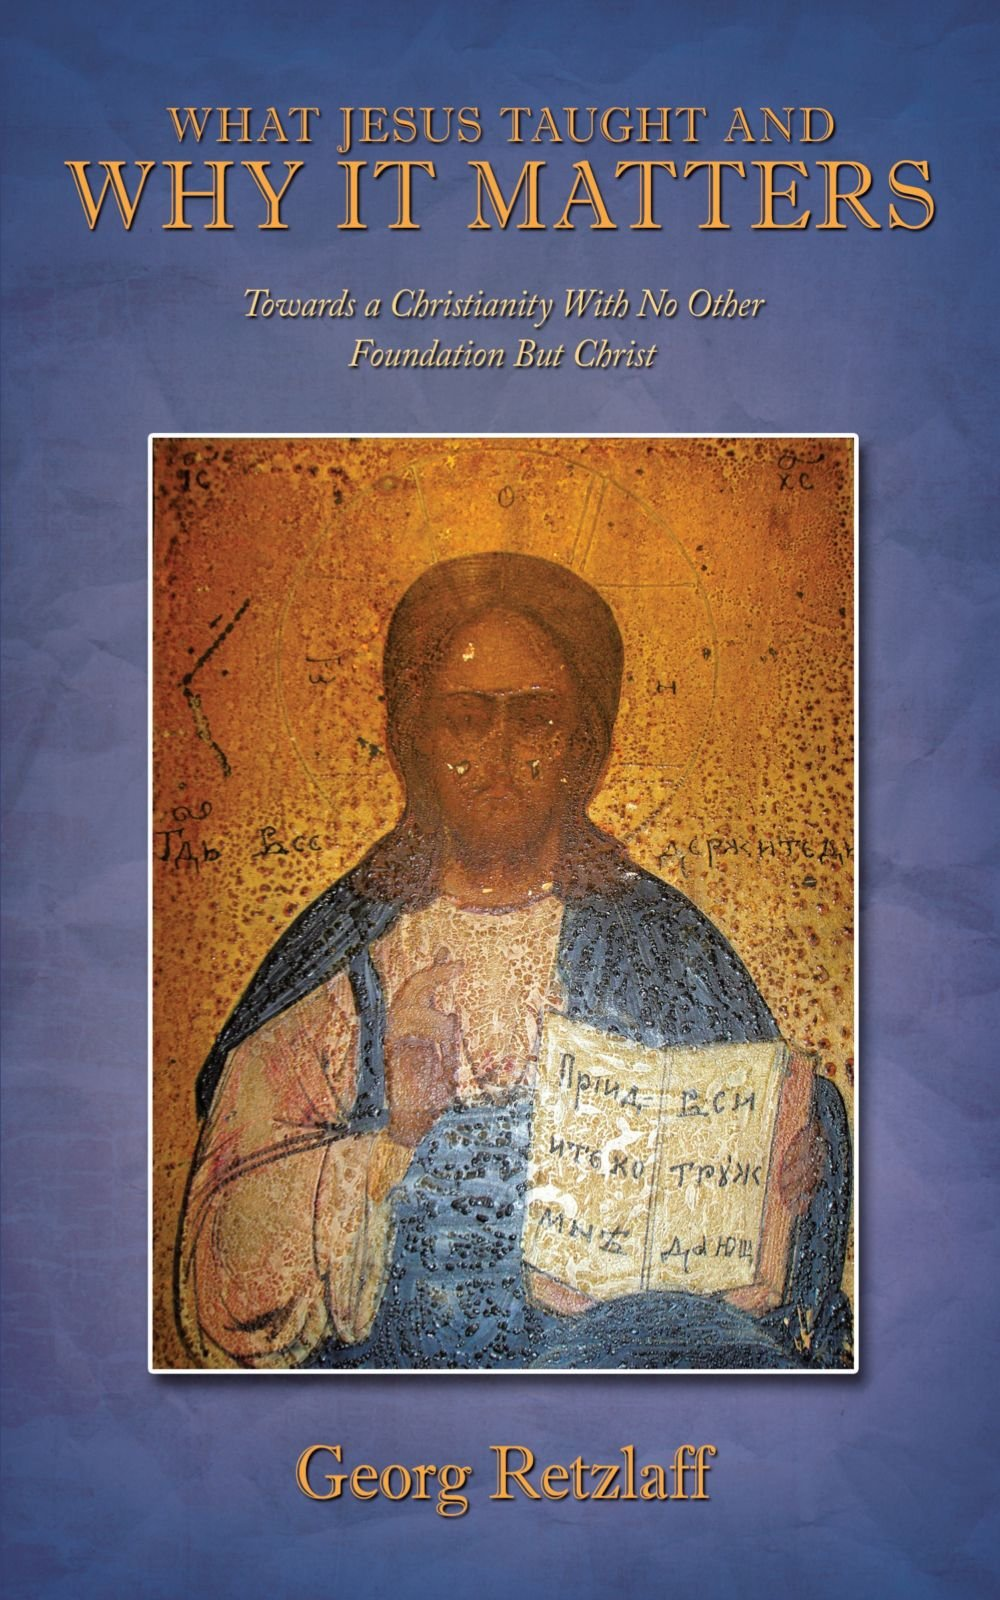 What Jesus Taught And Why It Matters: Towards A Christianity With No Other Foundation But Christ PDF